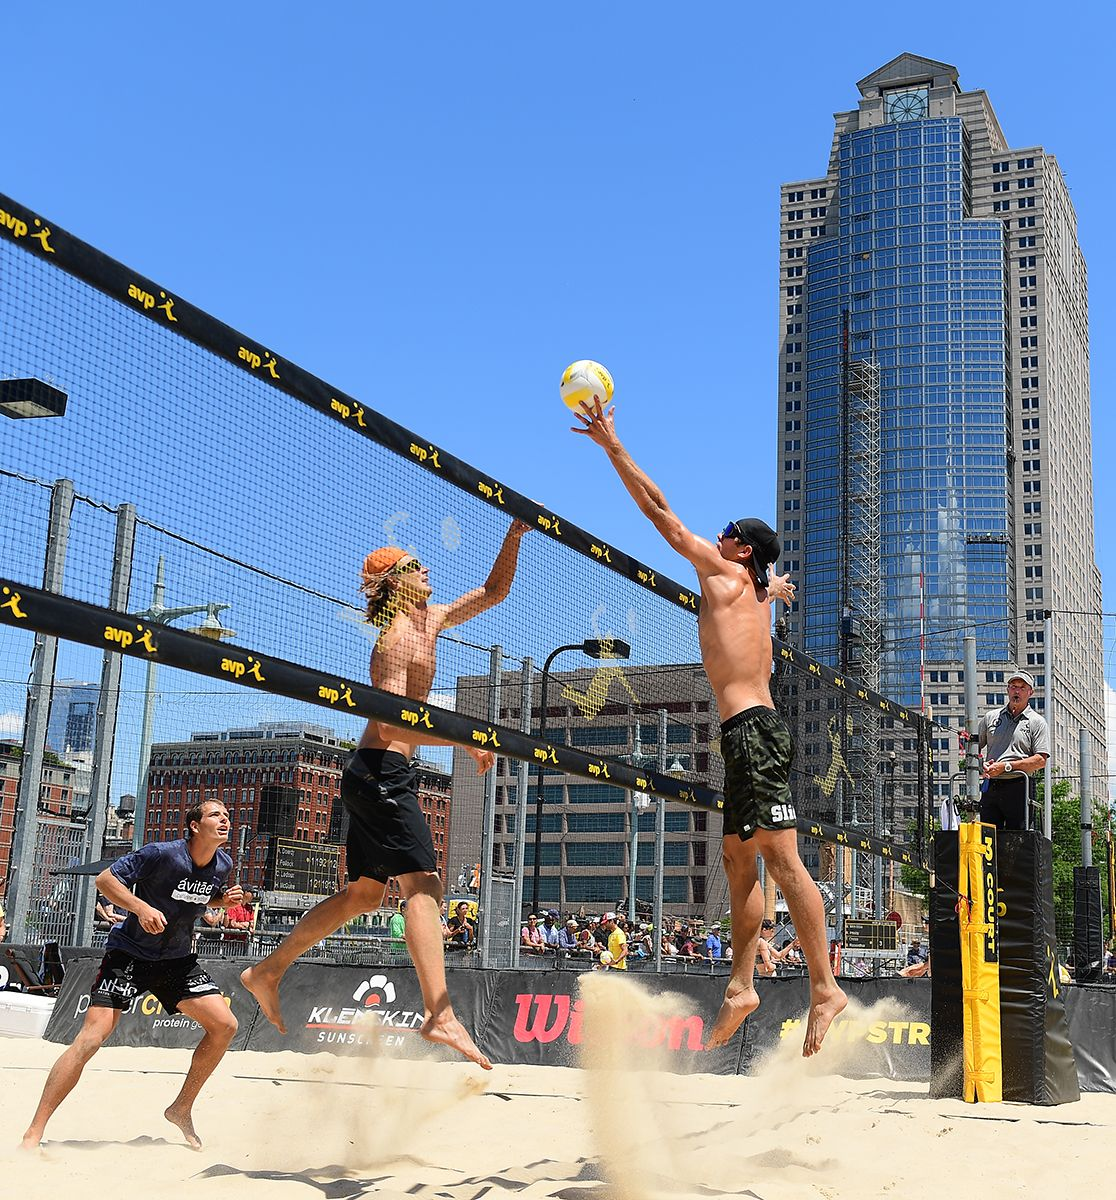 Avp Gold Series New York City Open 2017 Photo Gallery With Images 2017 Photos Beach Volleyball New York City